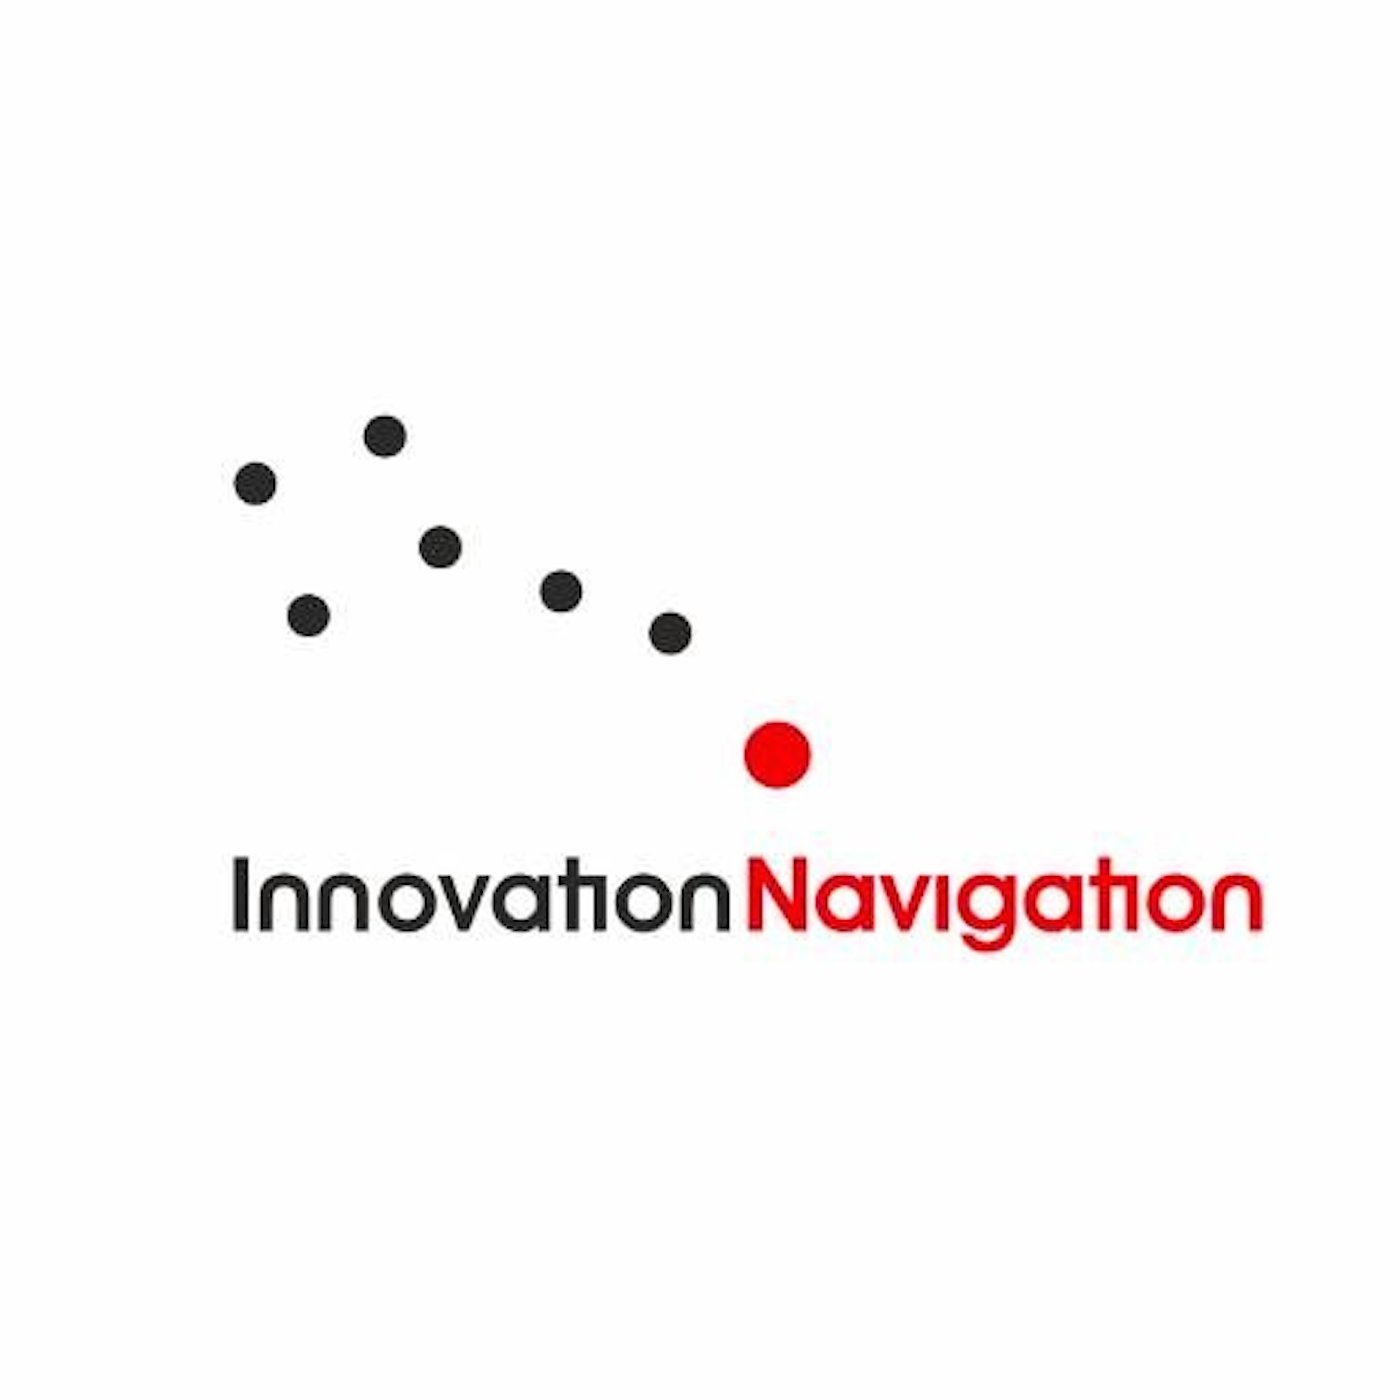 8/11/15 - Organizing for Innovation (Mark Payne & Rich Karlgaard)